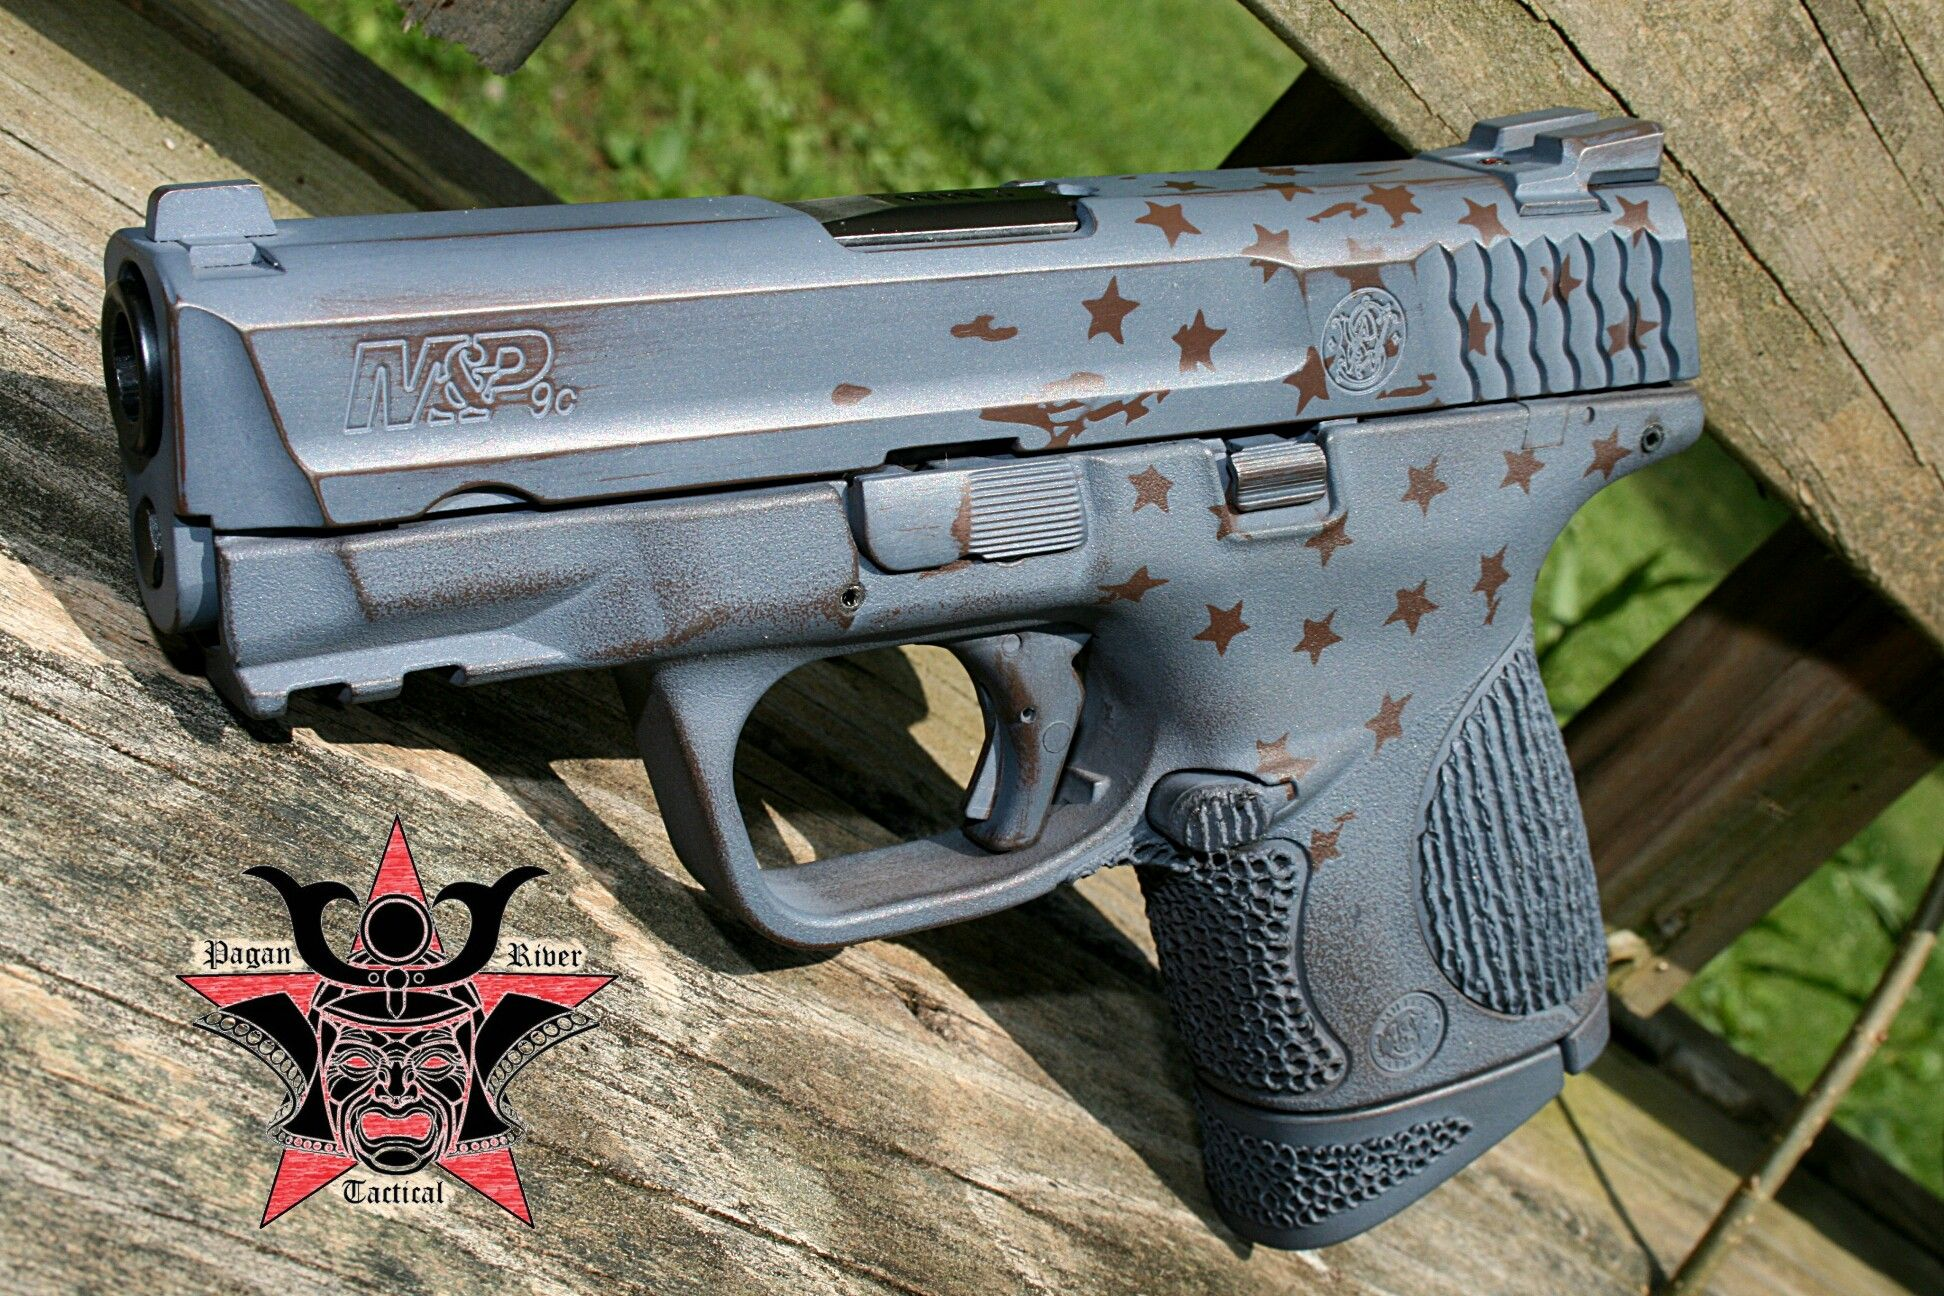 Pagan River Tactical take on some tattered stars on this Cerakote